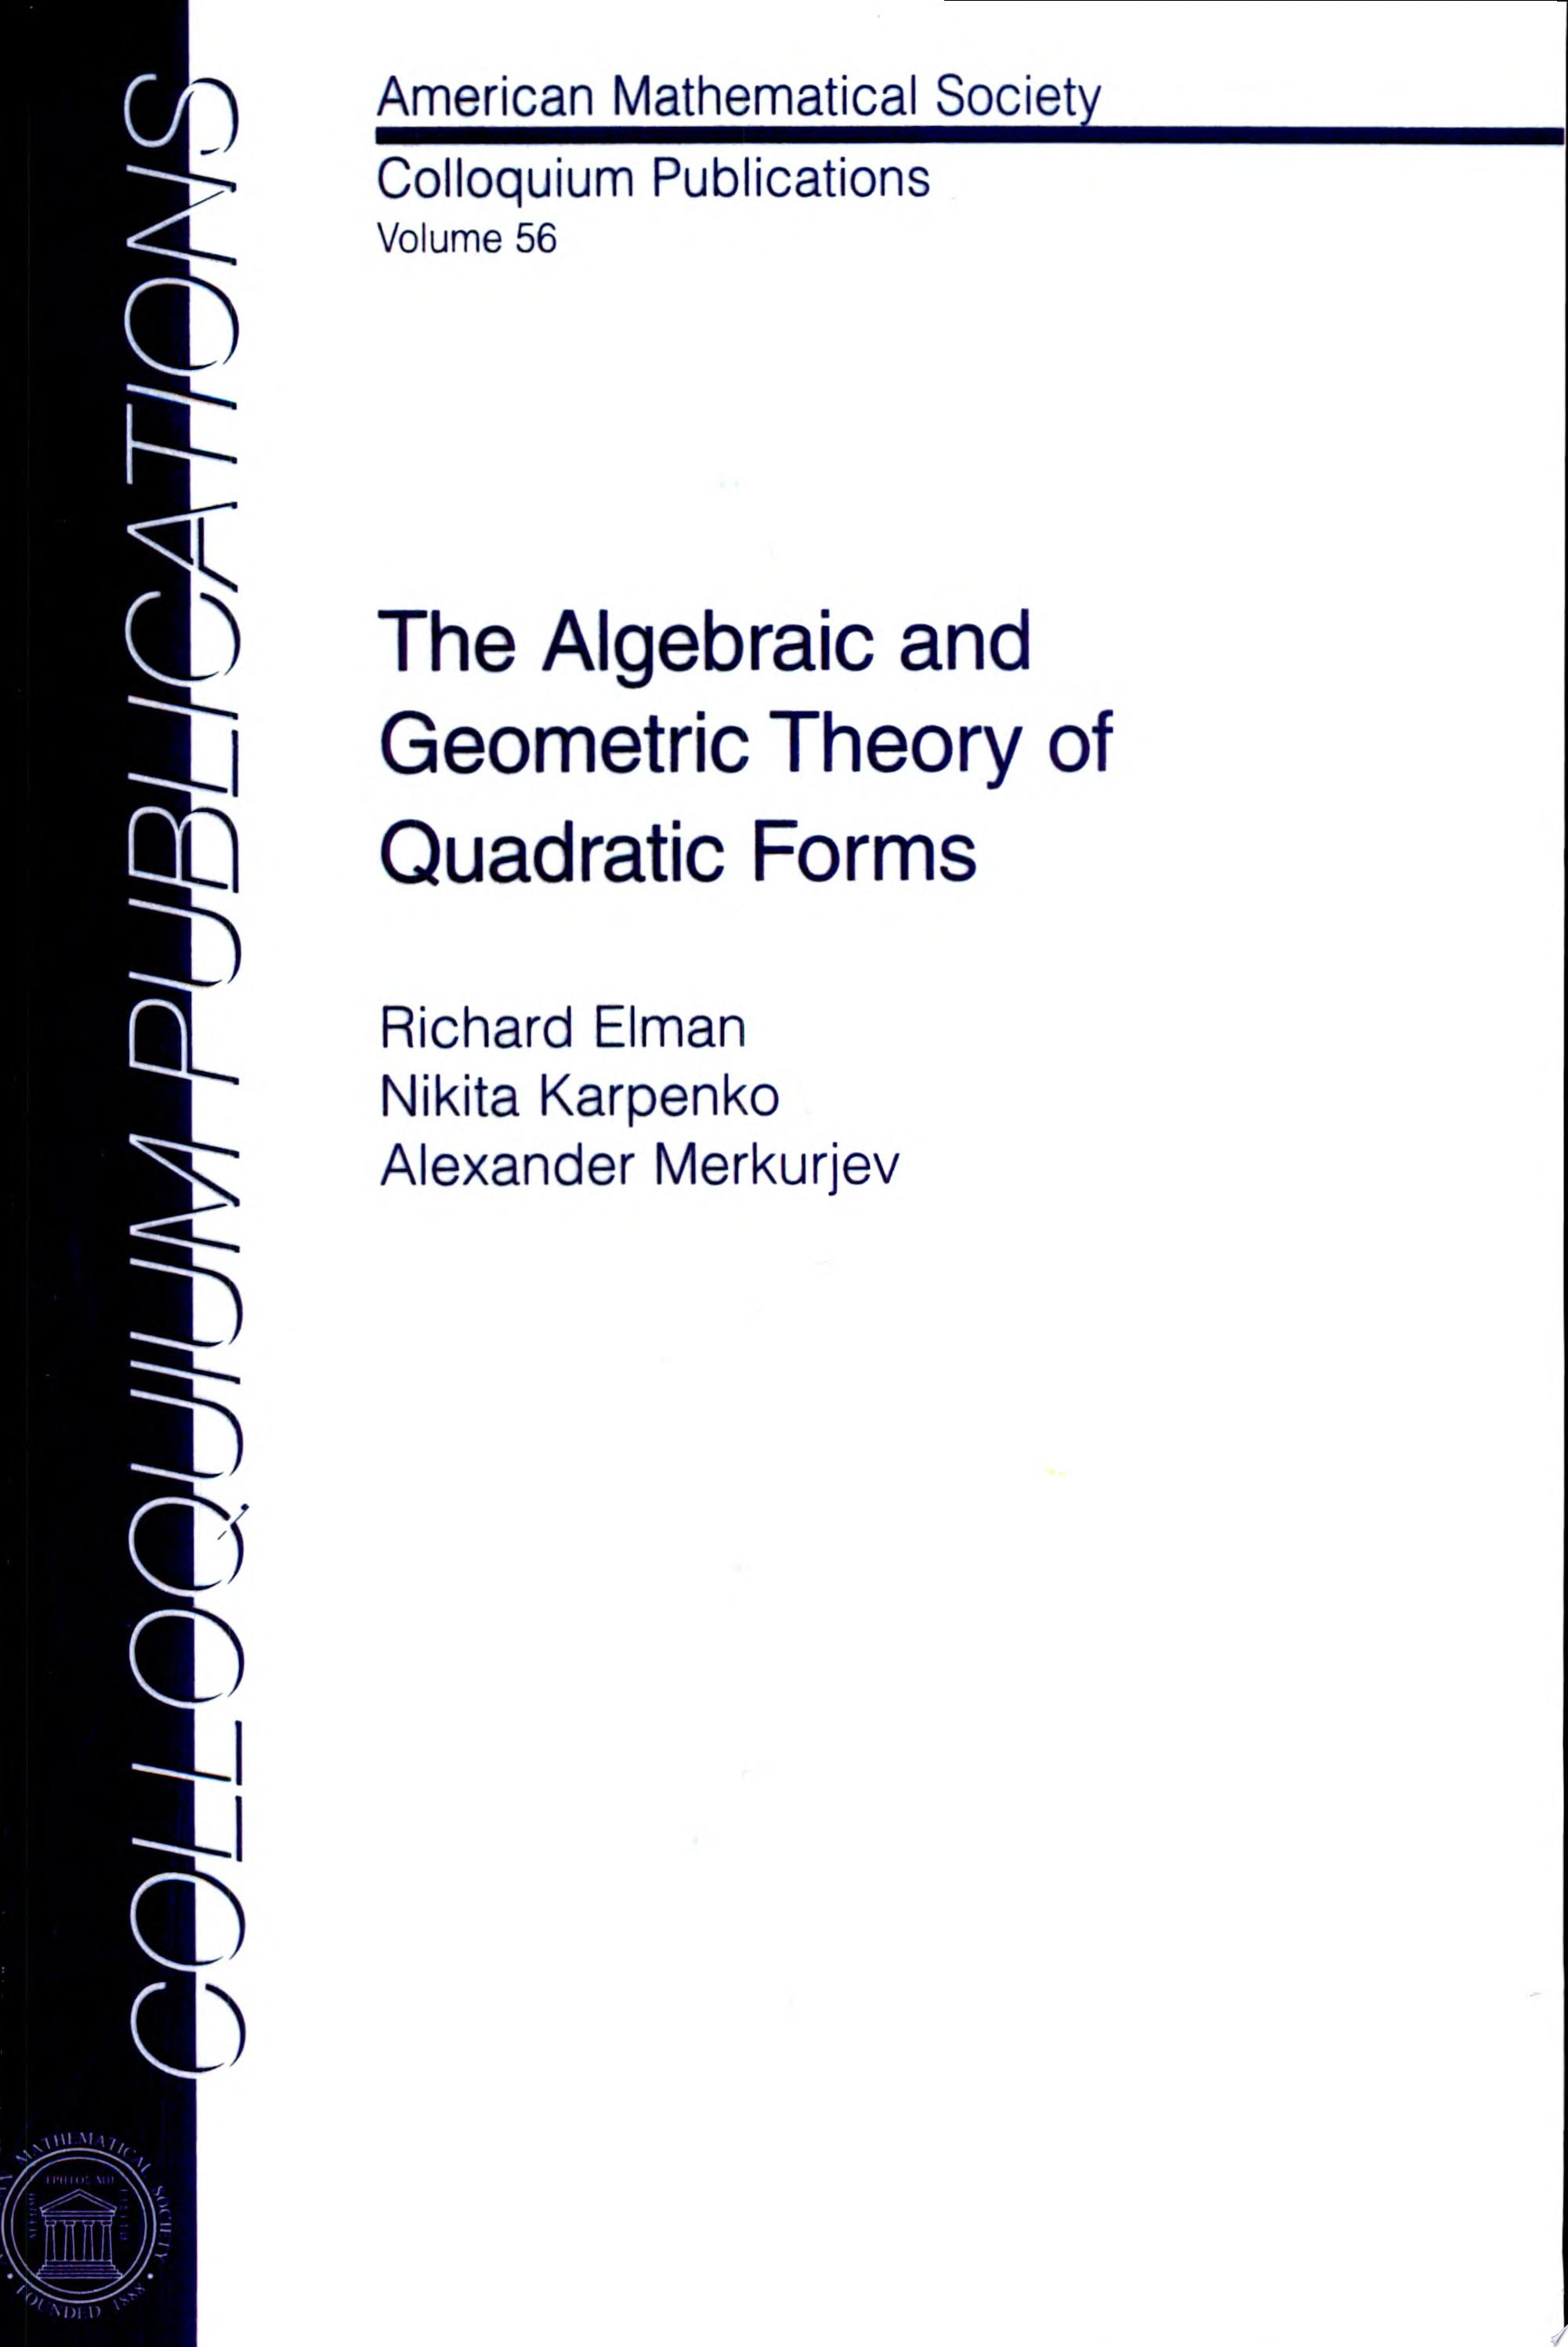 The Algebraic and Geometric Theory of Quadratic Forms